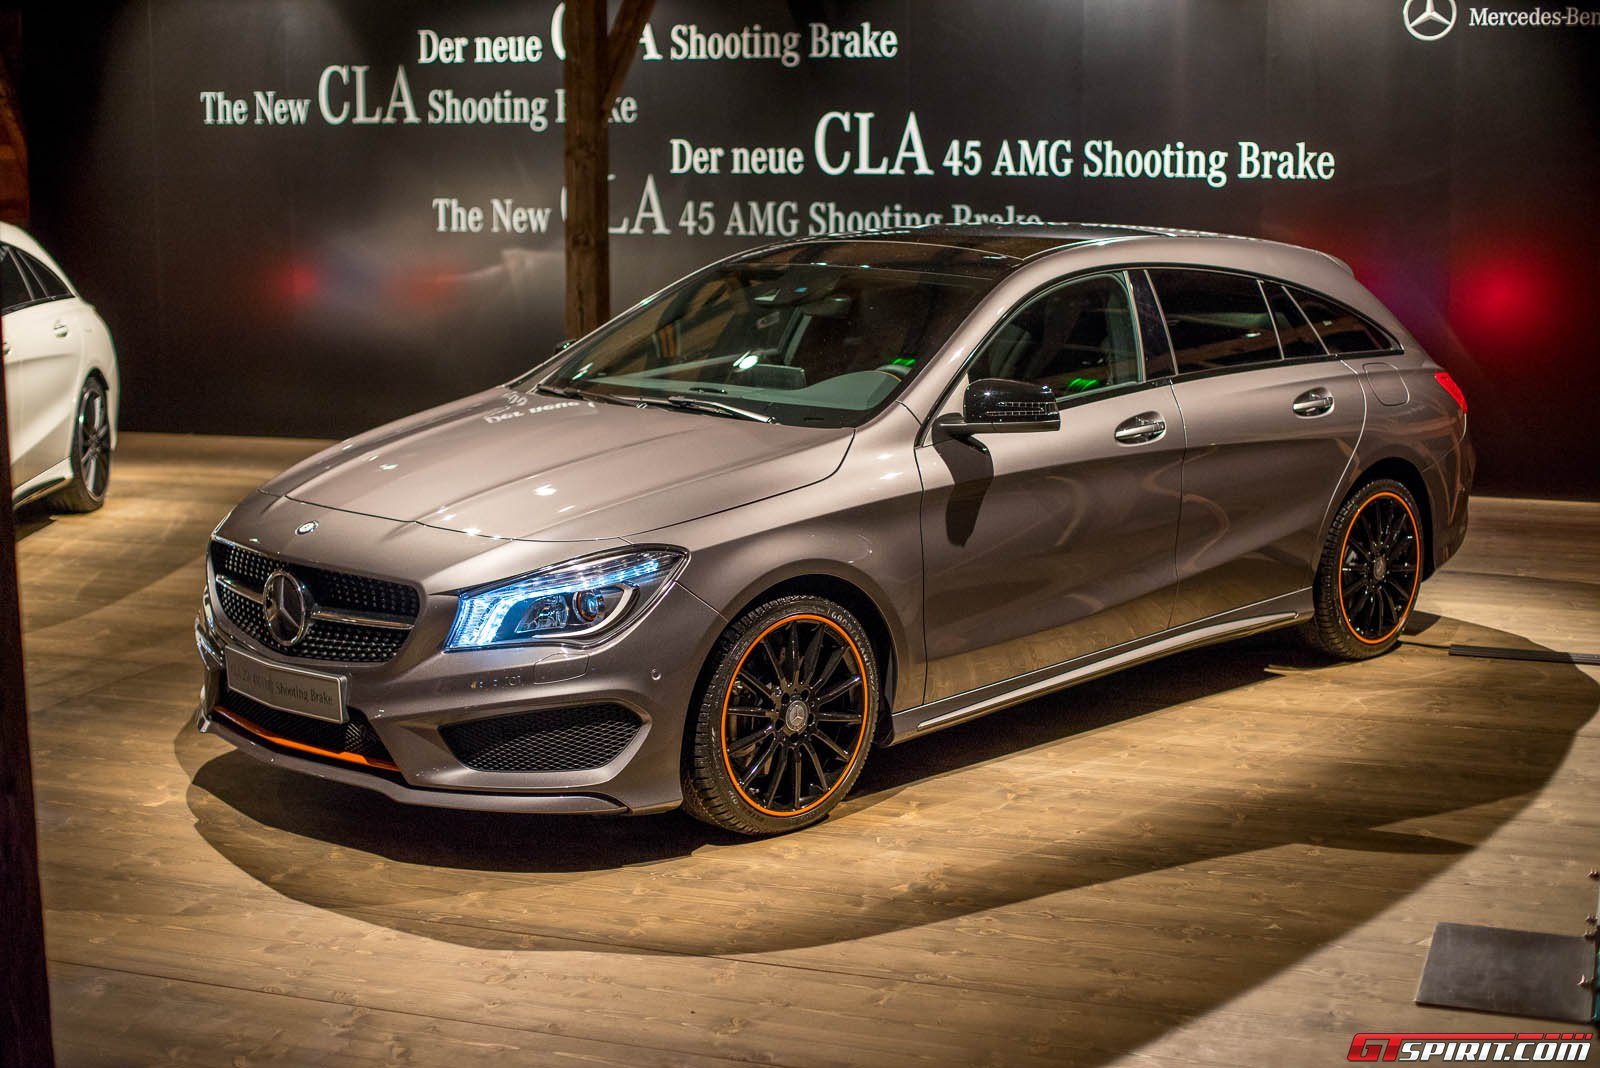 live 2015 mercedes benz cla shooting brake and cla45 amg shooting brake gtspirit. Black Bedroom Furniture Sets. Home Design Ideas